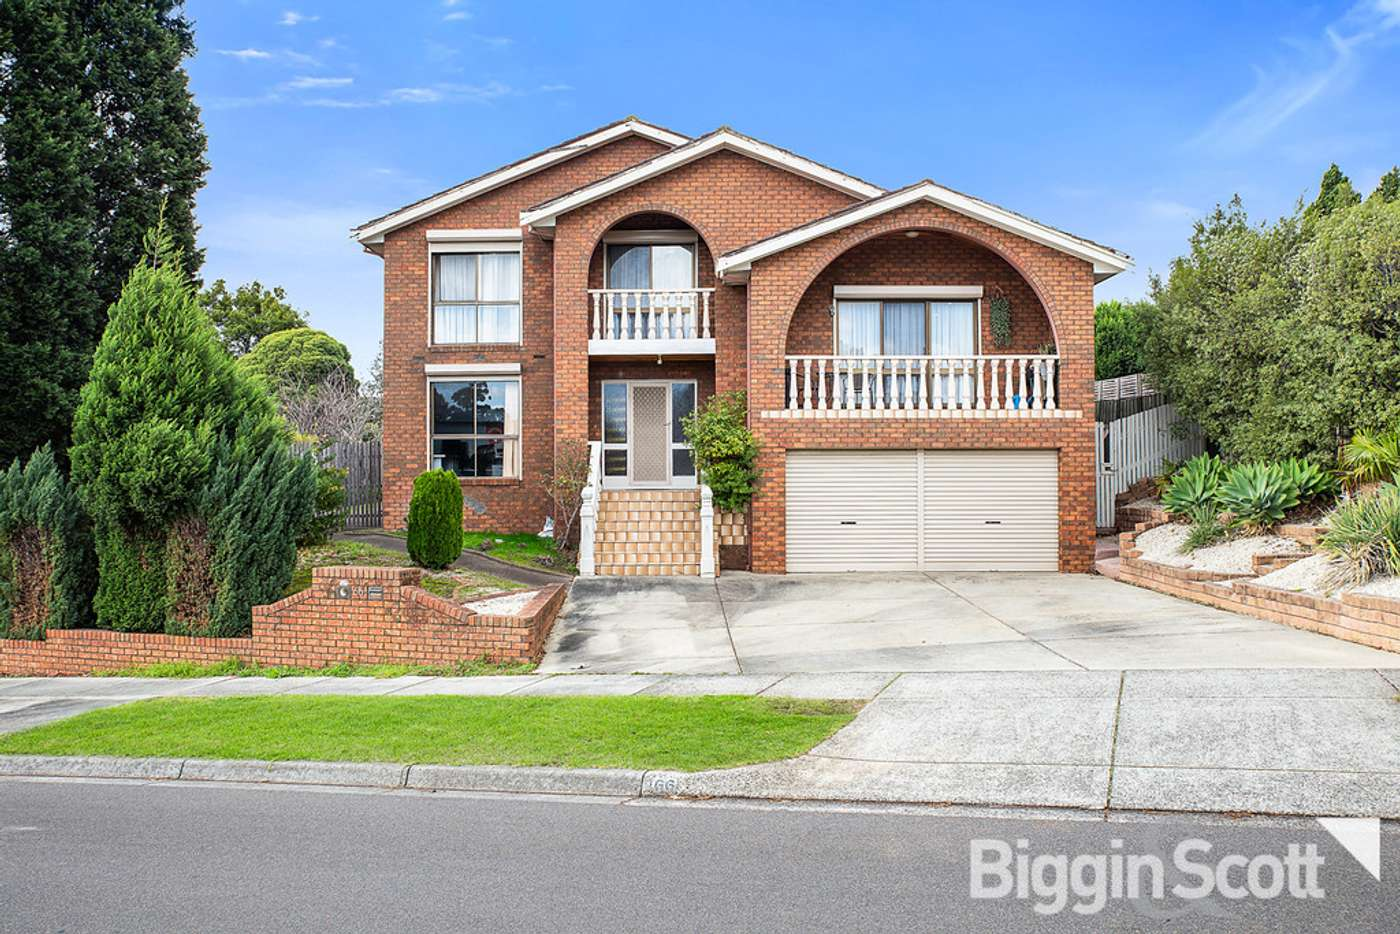 Main view of Homely house listing, 66 portland Street, Mulgrave VIC 3170